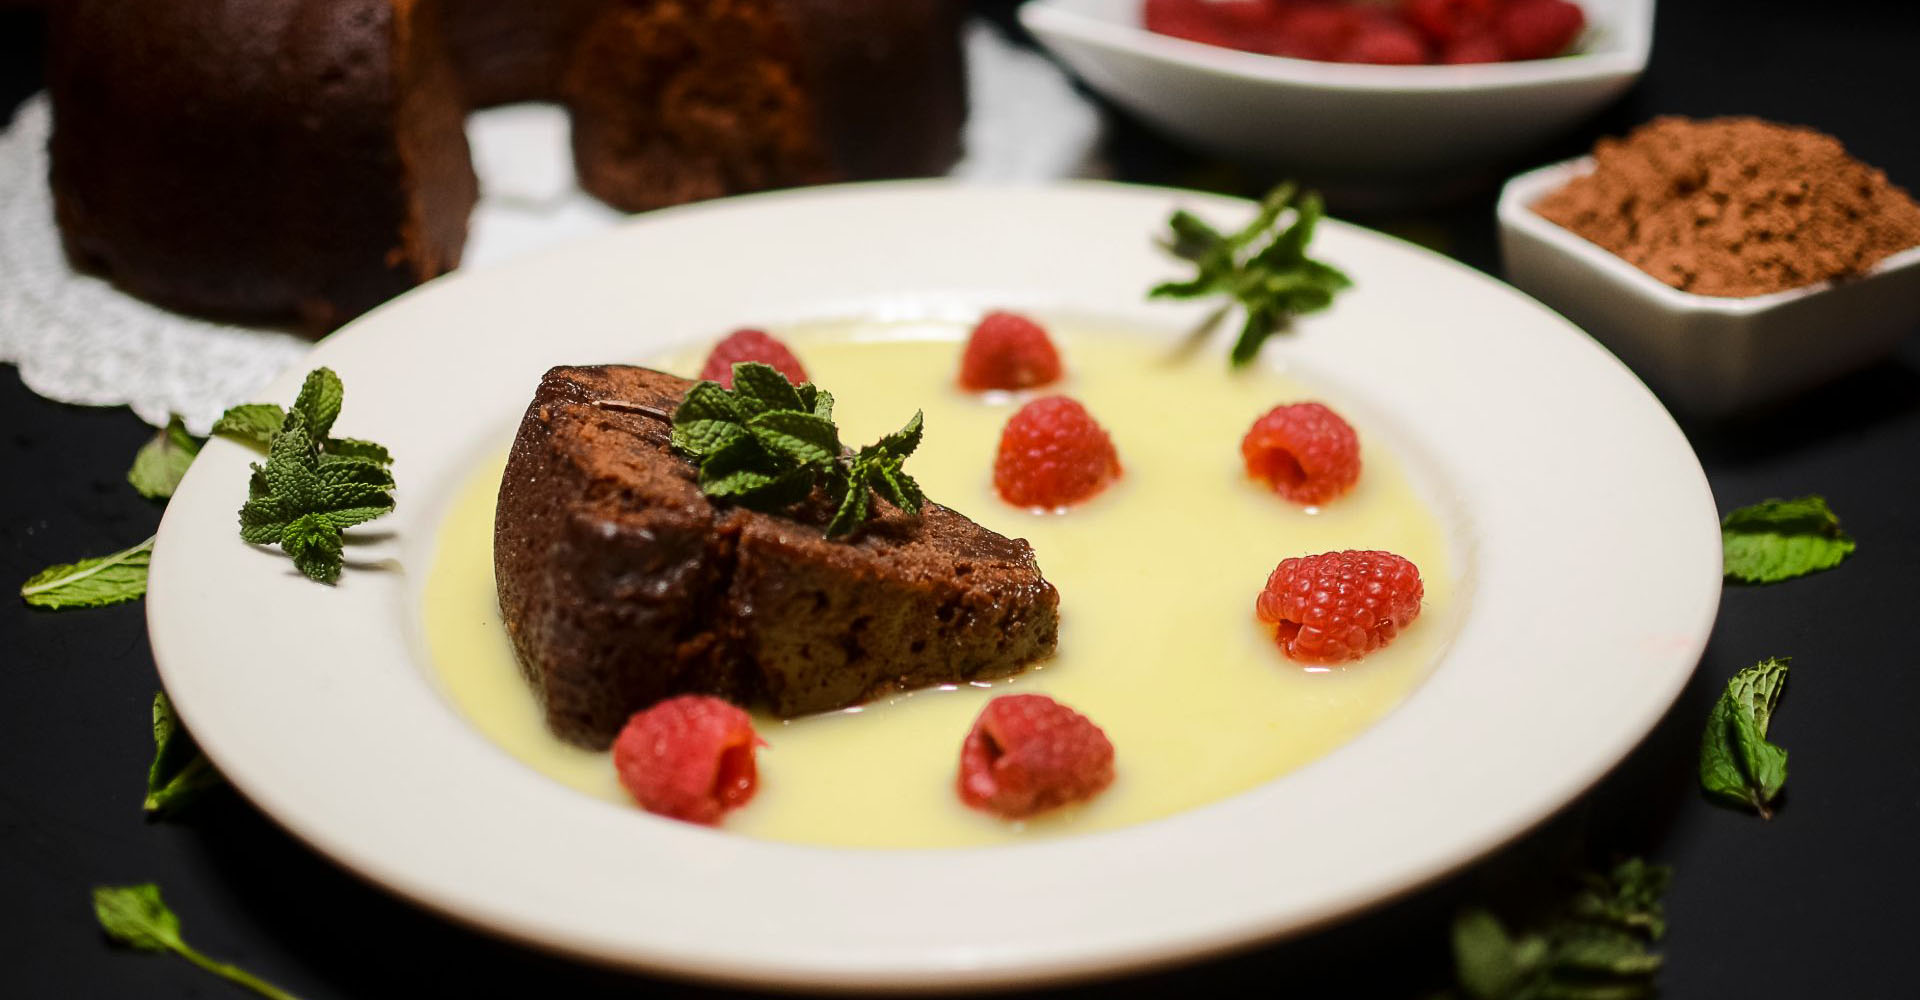 Close-up of a slice of chocolate cake on a plate with a vanilla cream, raspberries and mint leaves